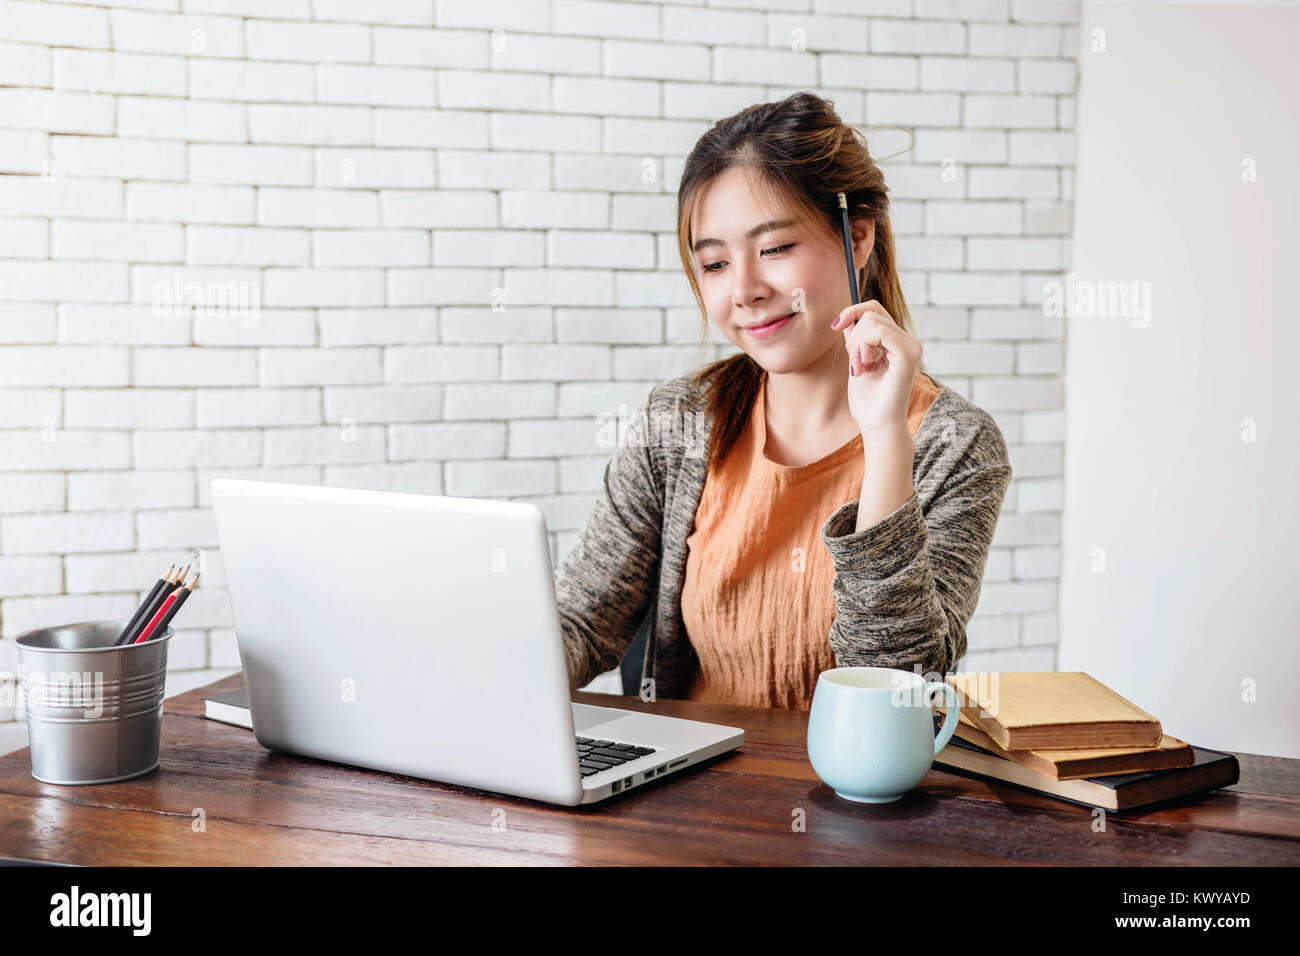 home office work. Young Woman Working On Laptop At Home Office, Work With Happy Smiley Face And Thoughtful Posture, Dressing Casual In Warm Cozy House Office